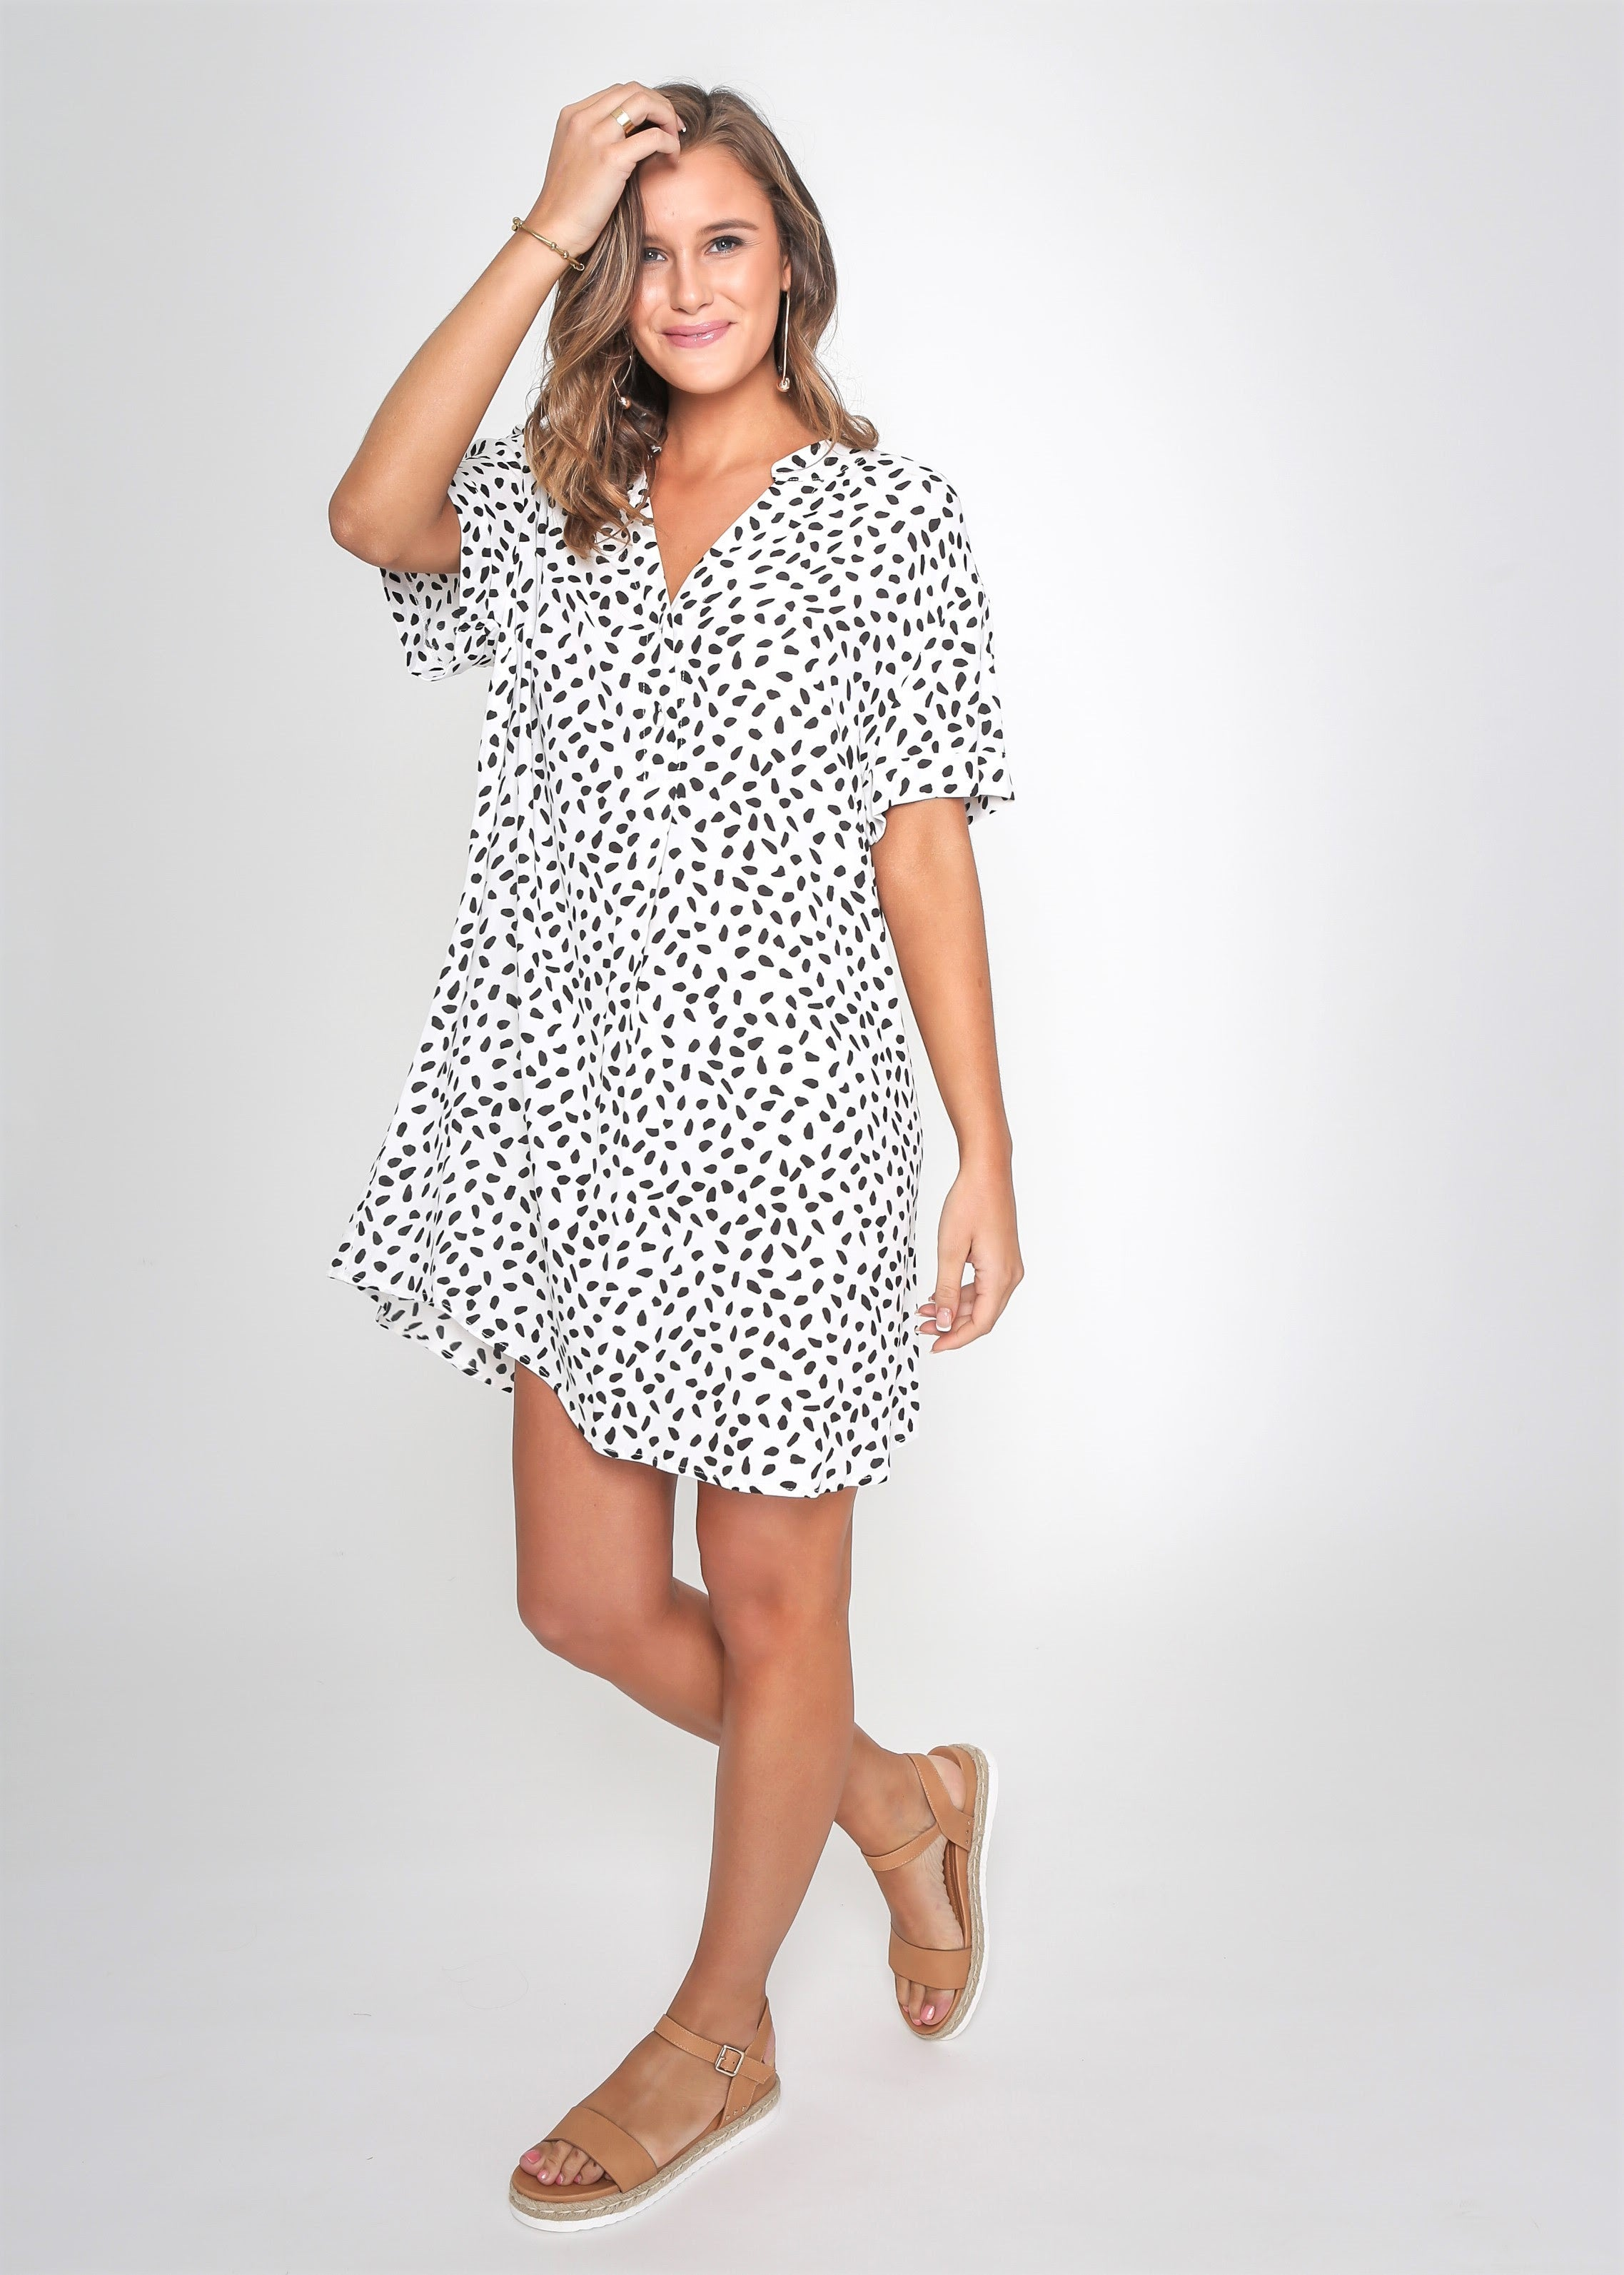 Leoni - Cheetah T-shirt Dress